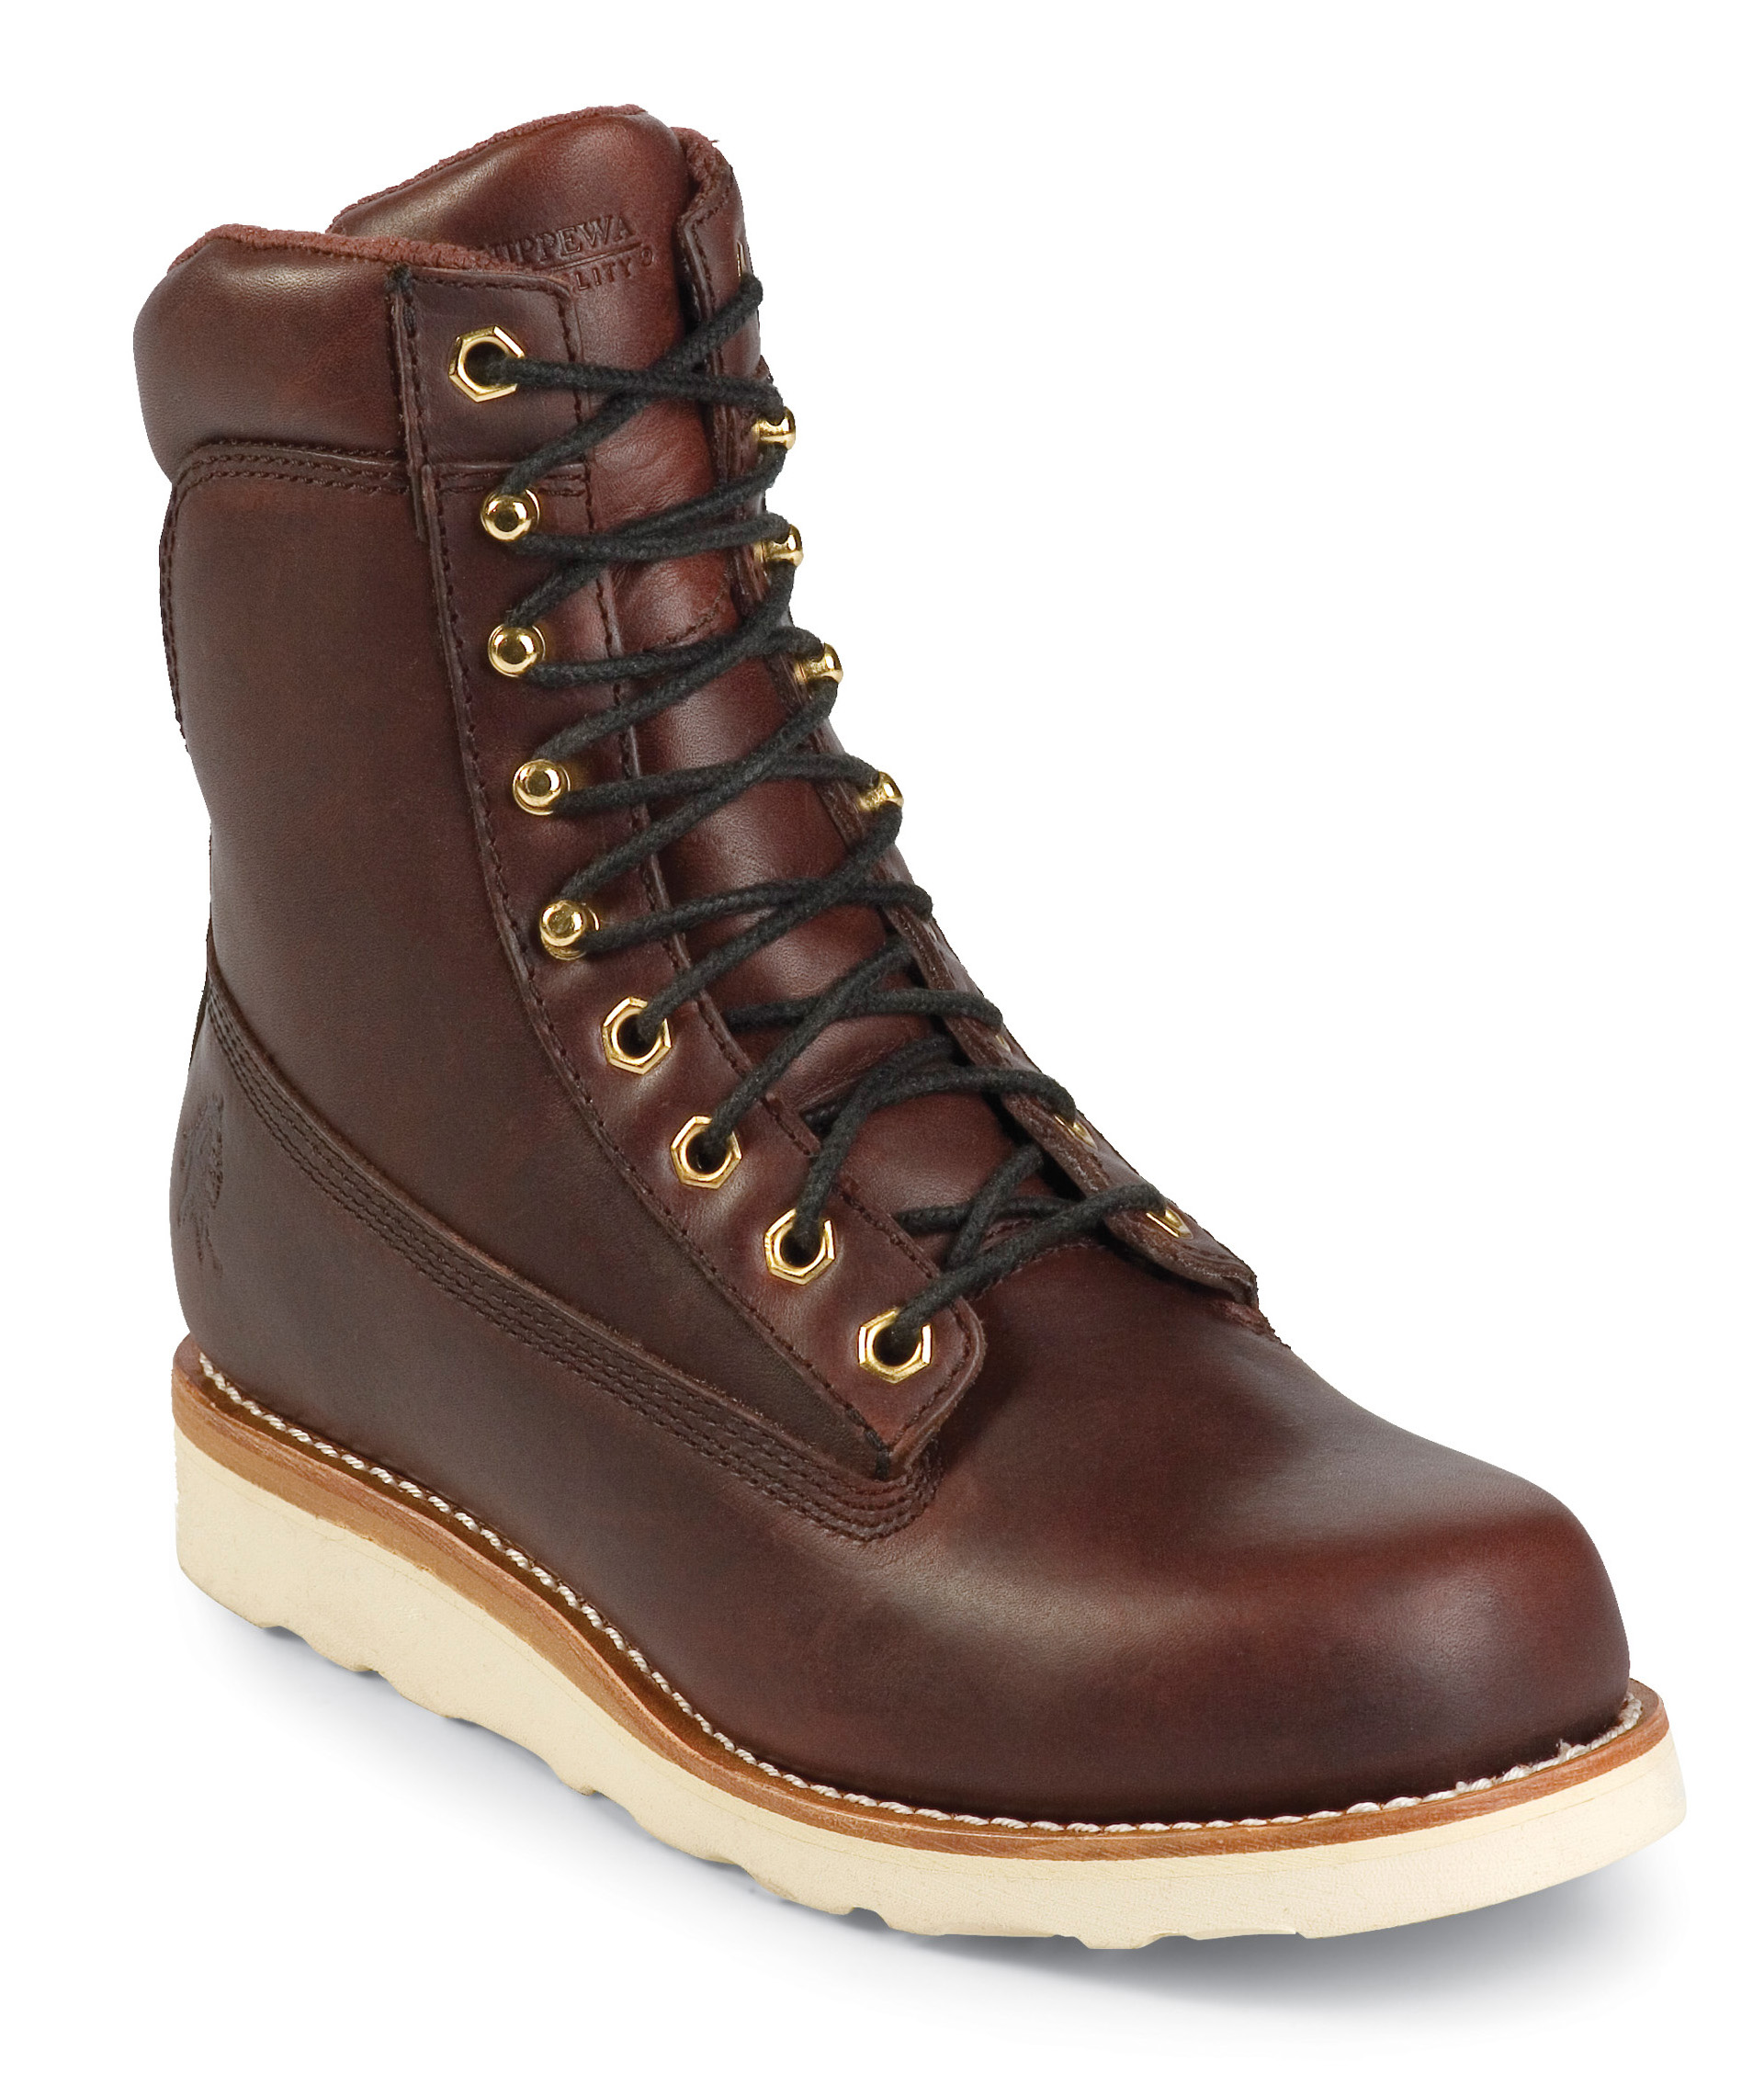 "Chippewa Men's Chippewa Utility Wedge Work Boots 8"" Oiled Redwood Leather 72055 (EE) at Sears.com"